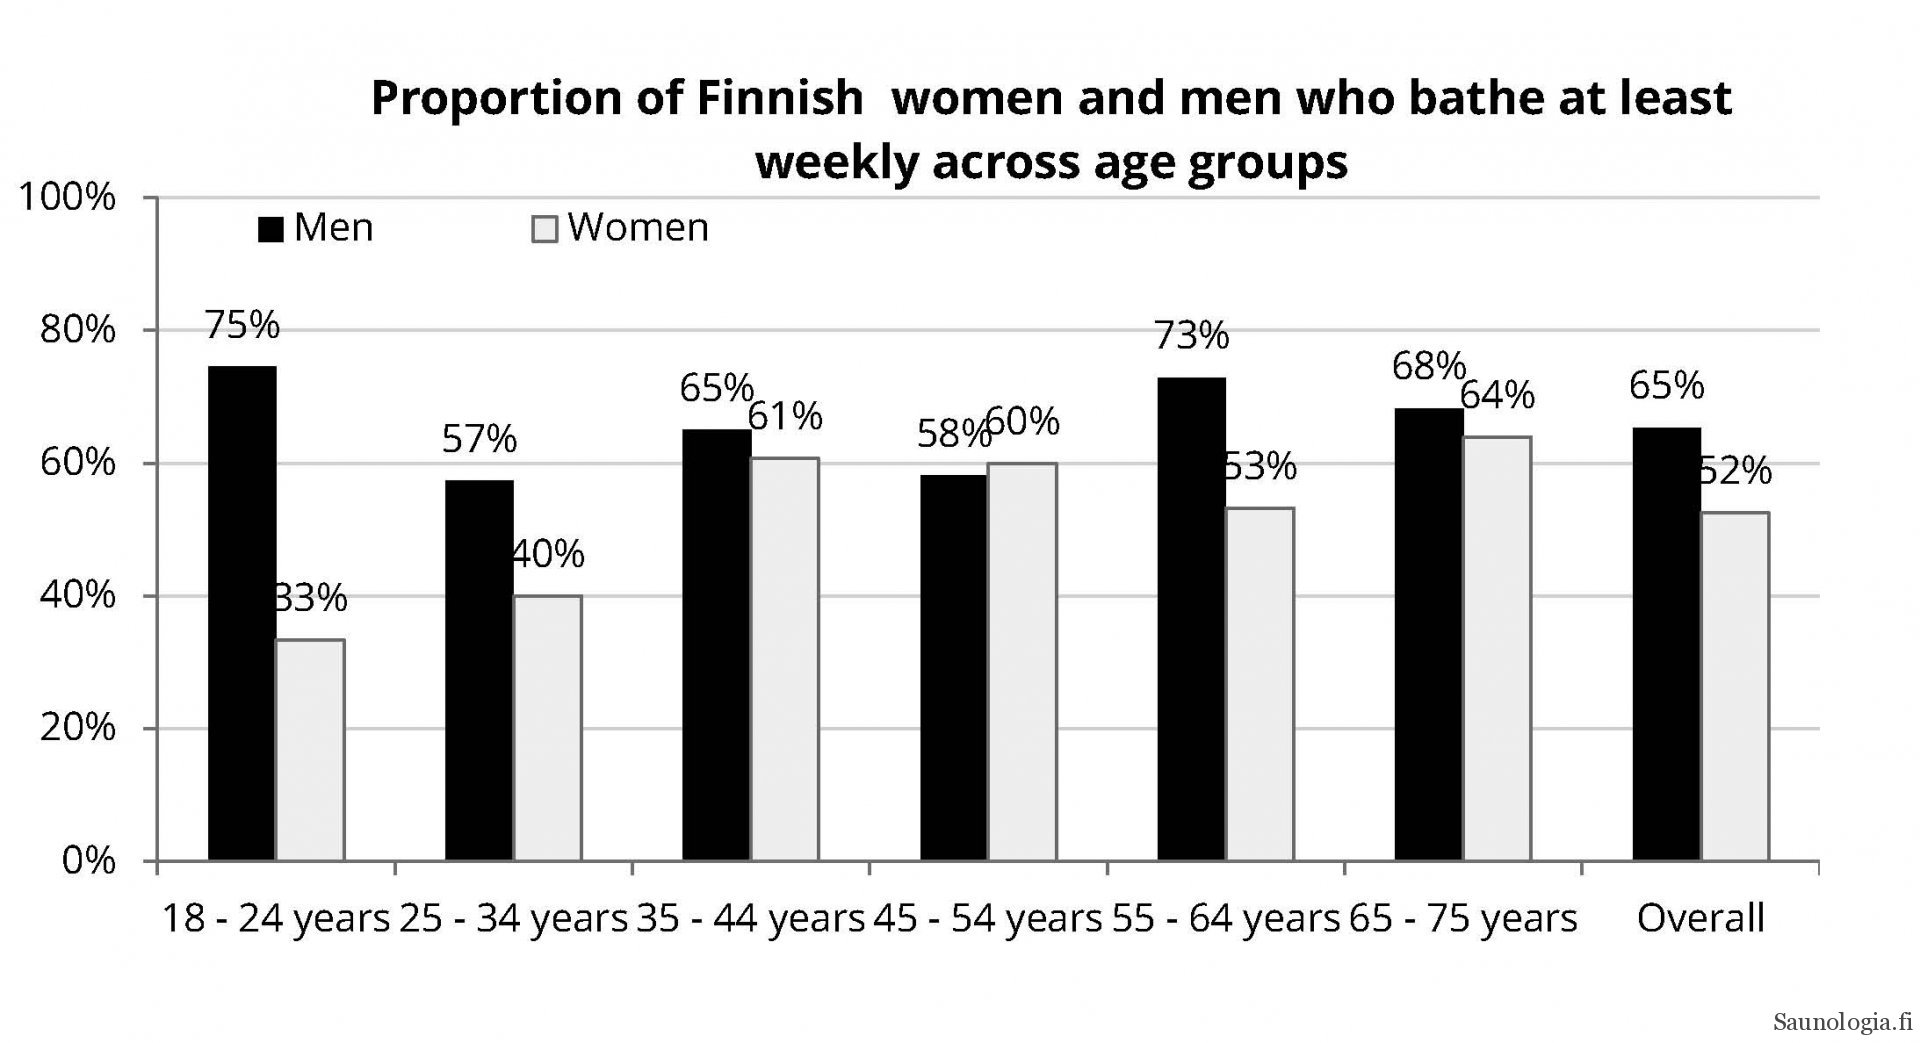 figure of men and women weekly bathing frequency